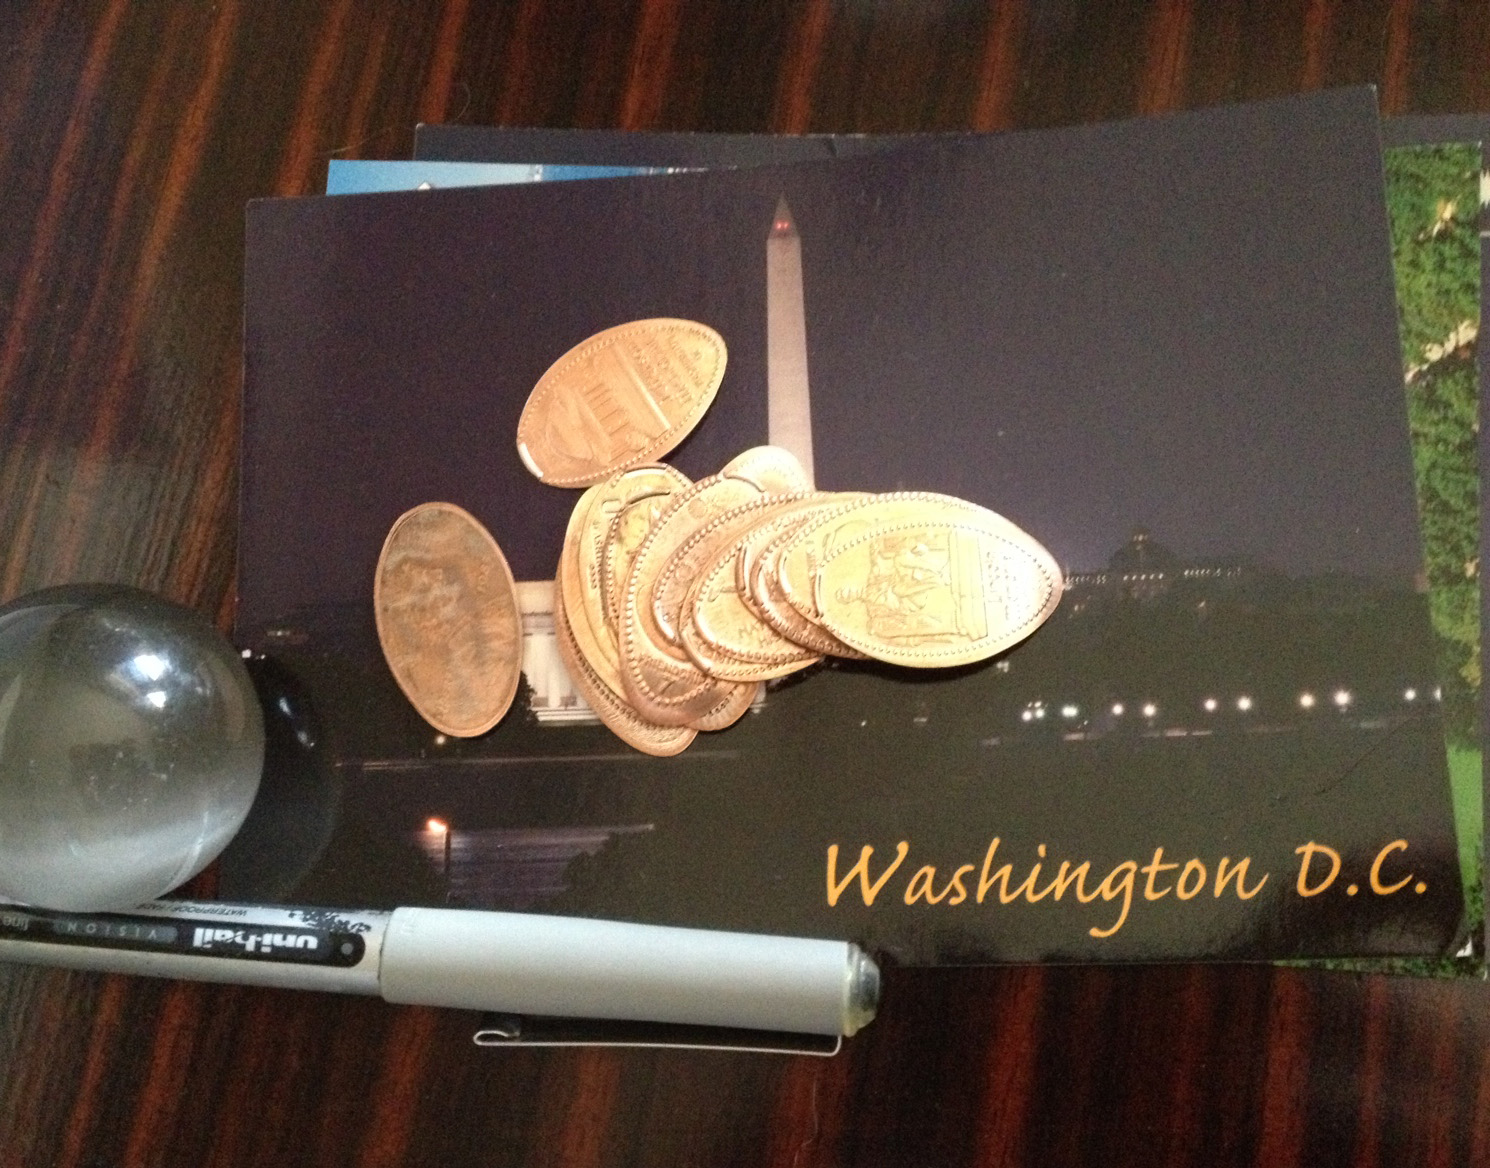 We collected many squished pennies!! If you are a fan of these souvenirs, DC is the place for you!